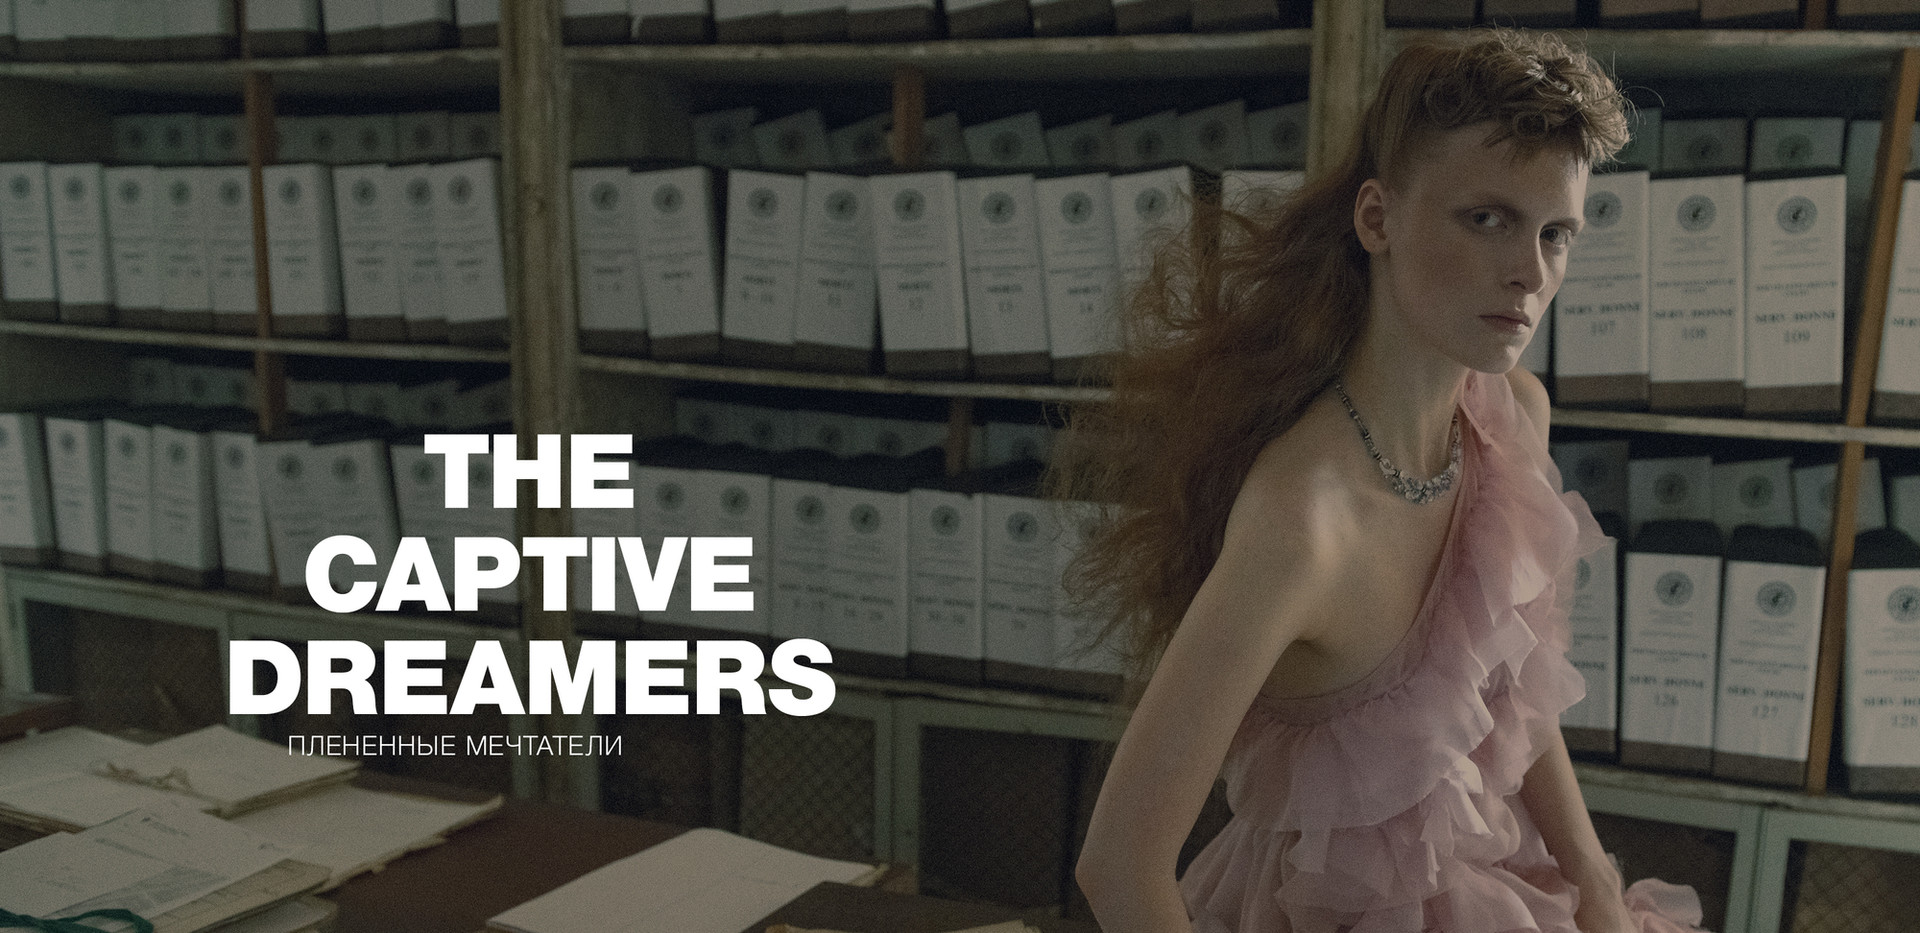 The Captive Dreamers